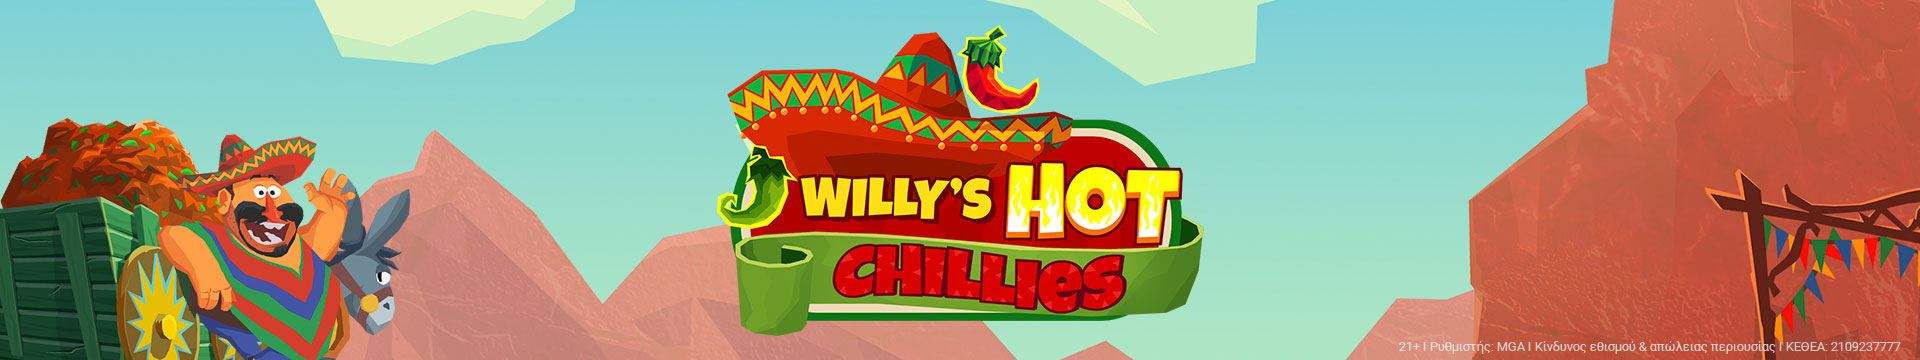 Willys_Hot_Chillies